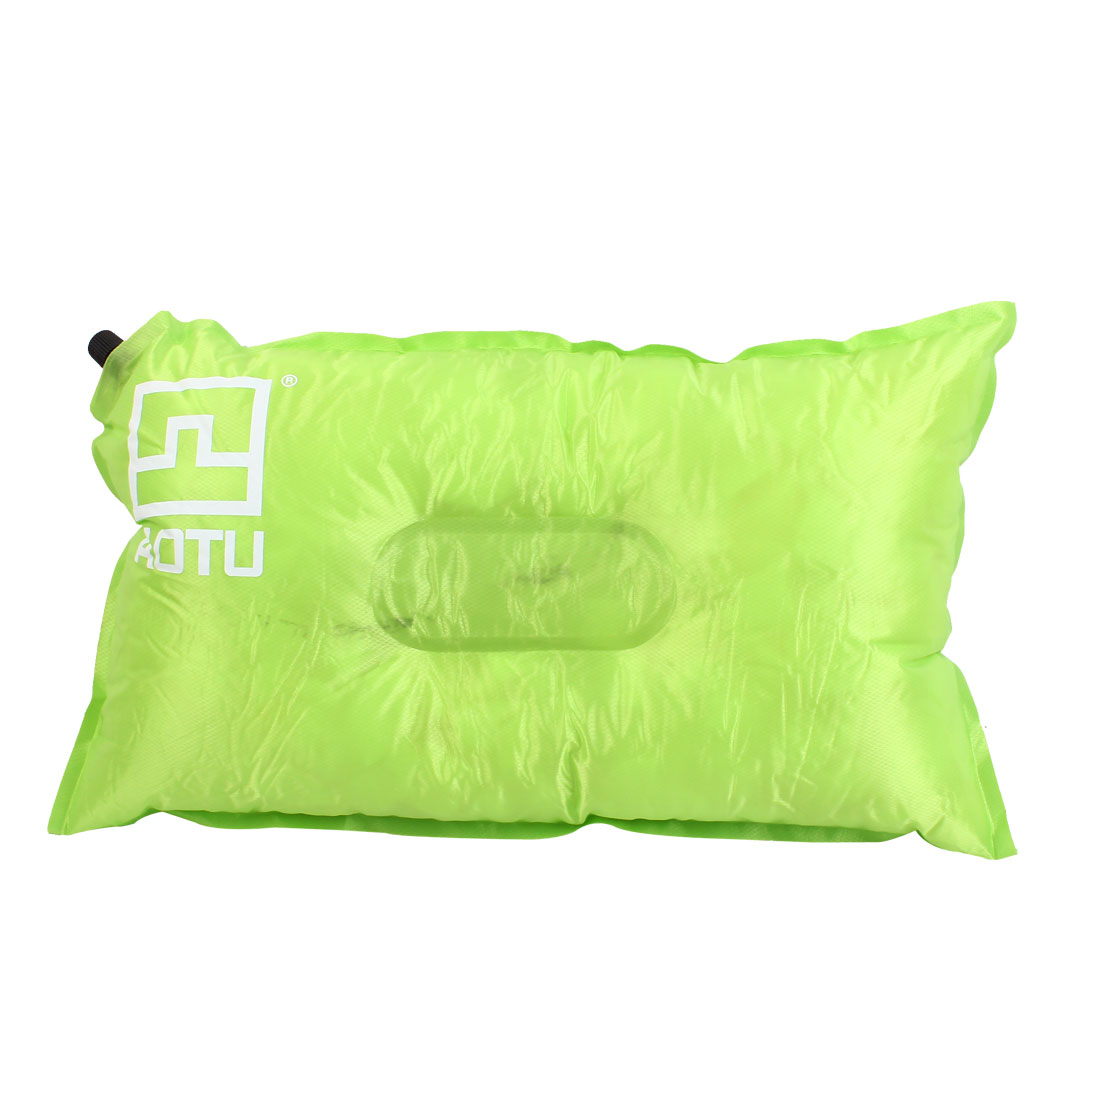 Outdoor Camping Travel Beach Automatic Inflatable Pillow Cushion Mattress Green